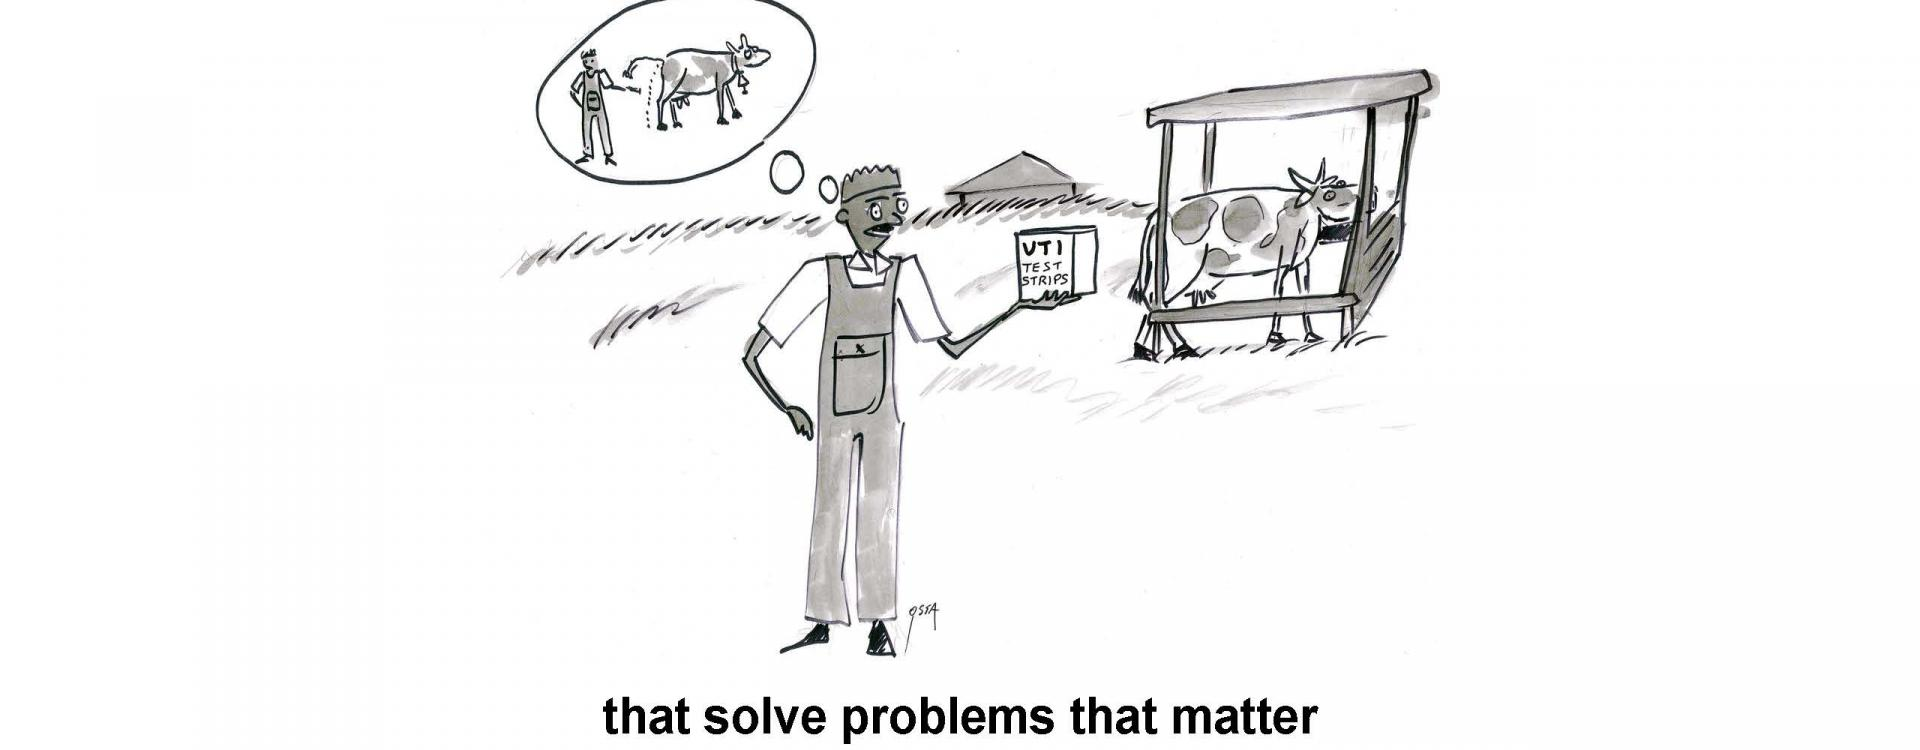 that solve problems that matter